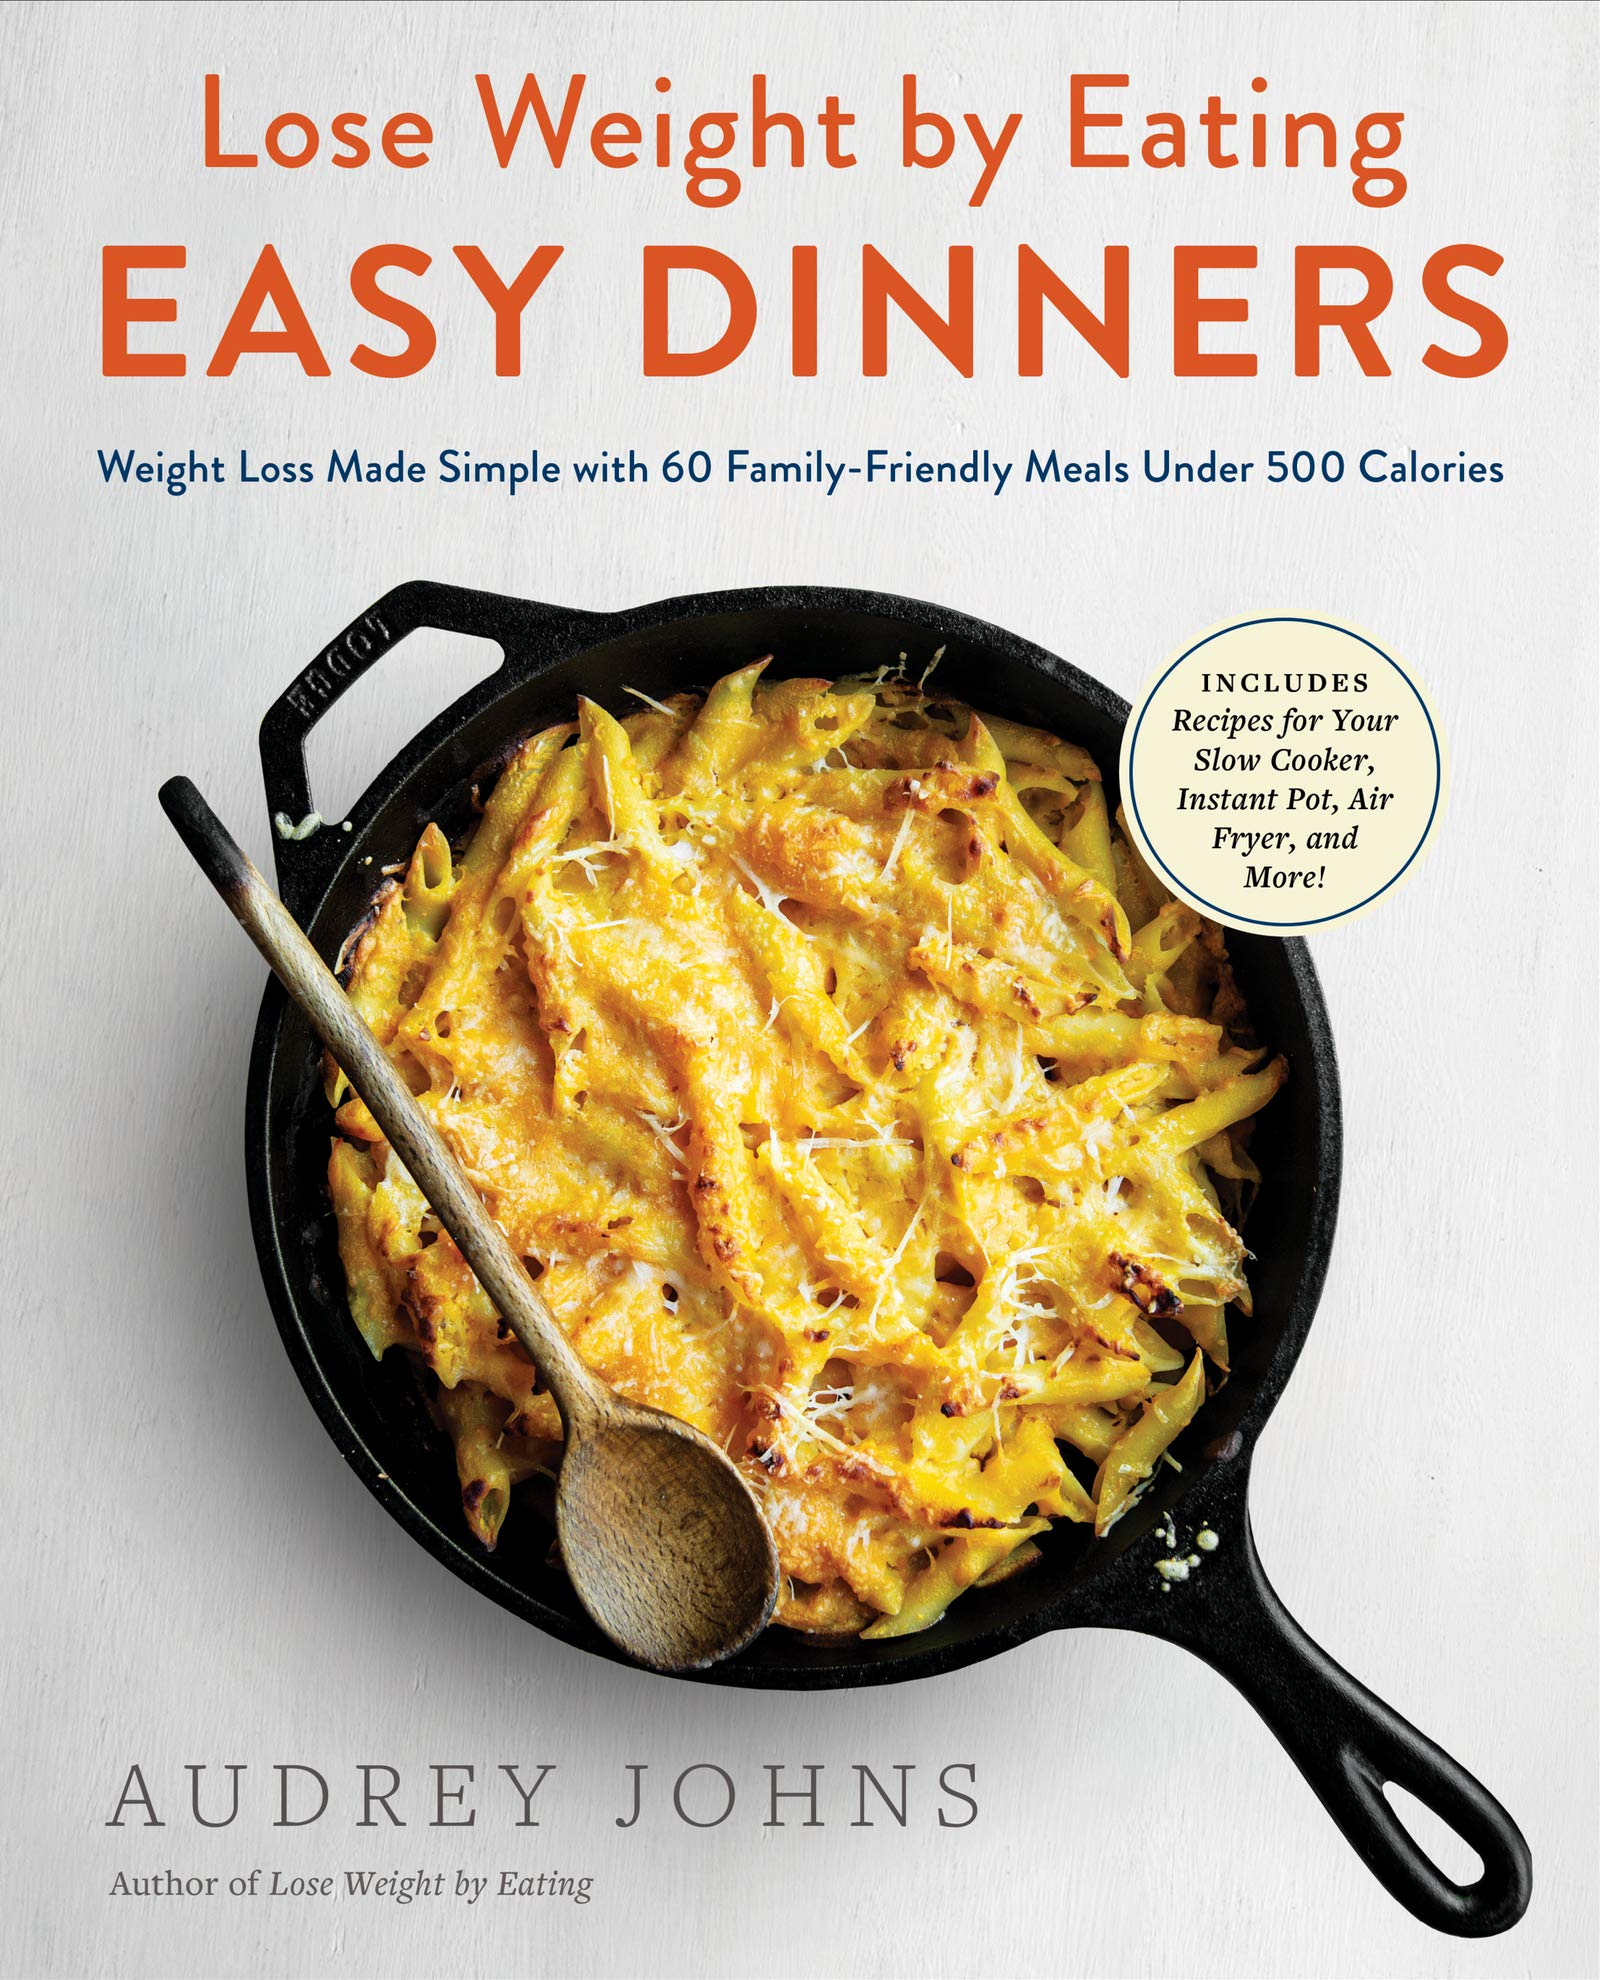 Lose Weight By Eating Easy Dinners Weight Loss Made Simple With 60 Family Friendly Meals Under 500 Calories Johns Audrey 9780062974716 Amazon Com Books